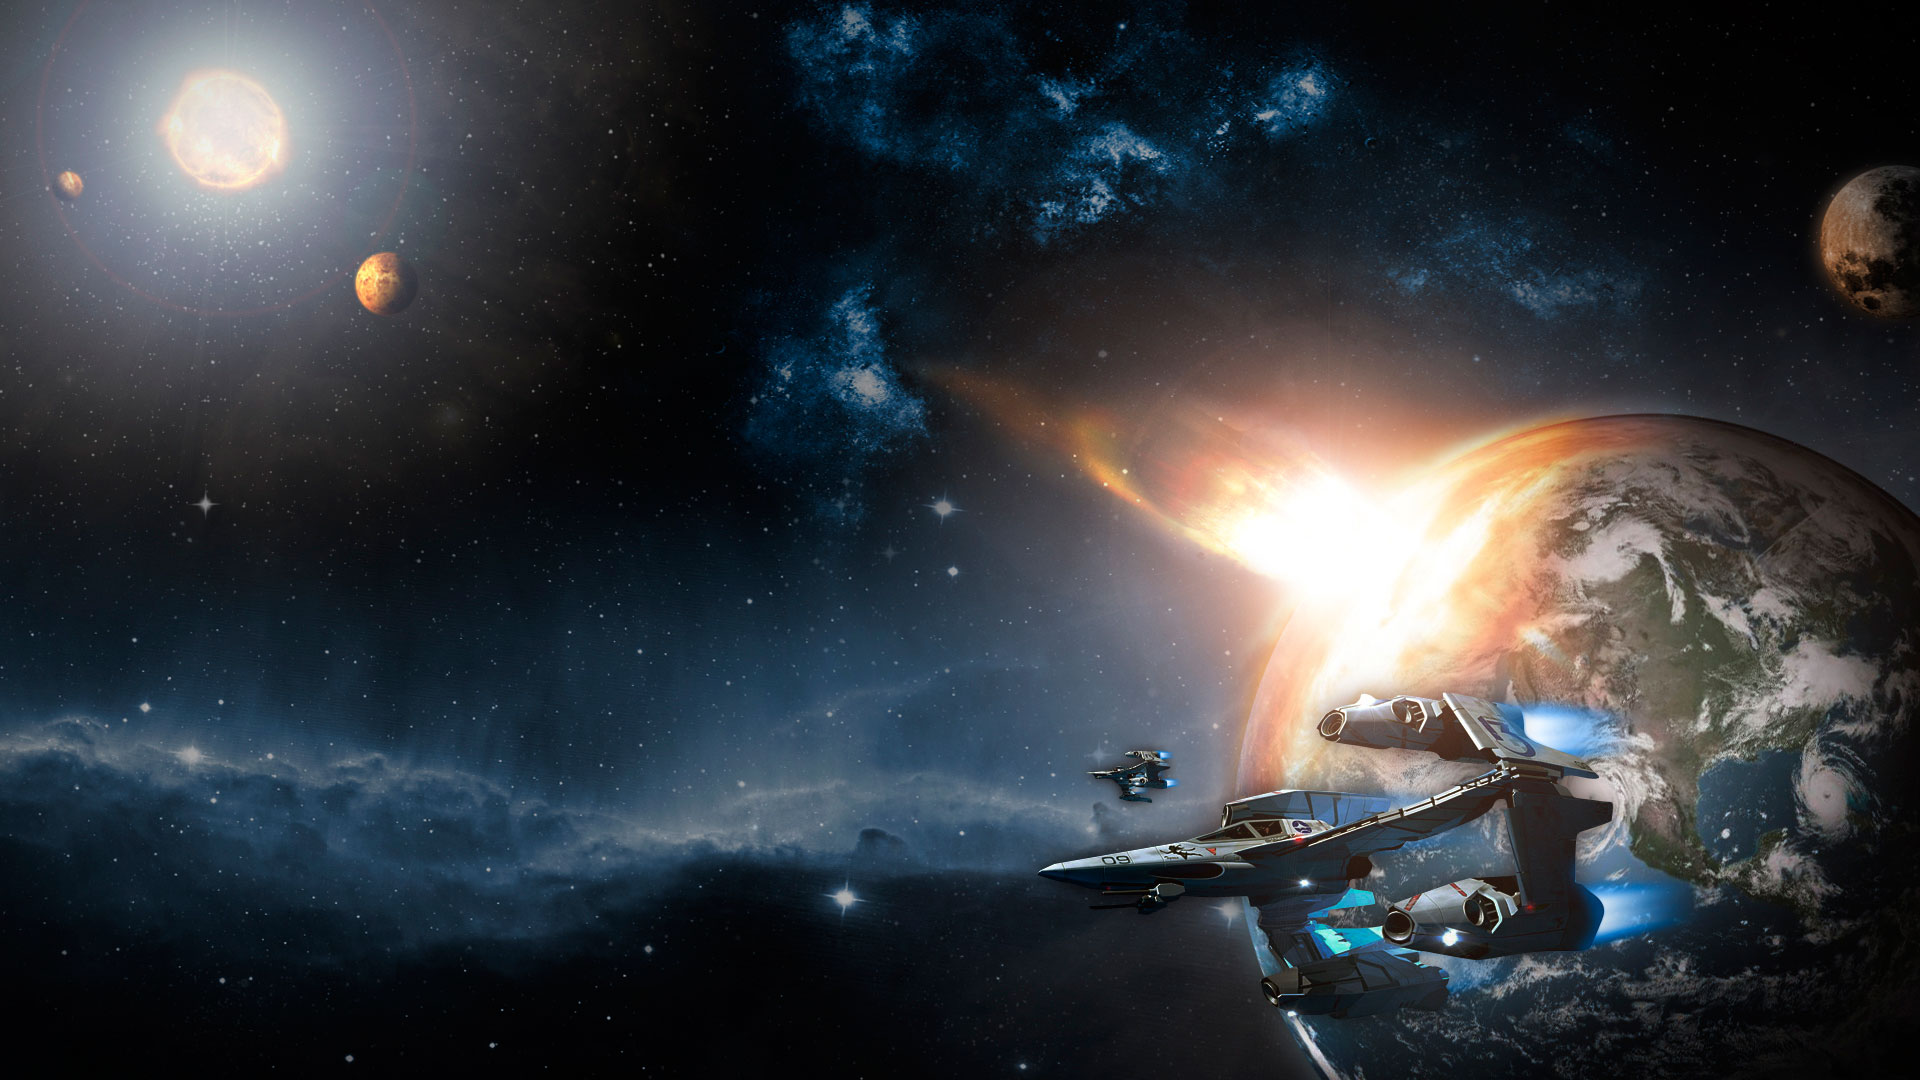 1920x1080 - Spaceship Wallpapers 21